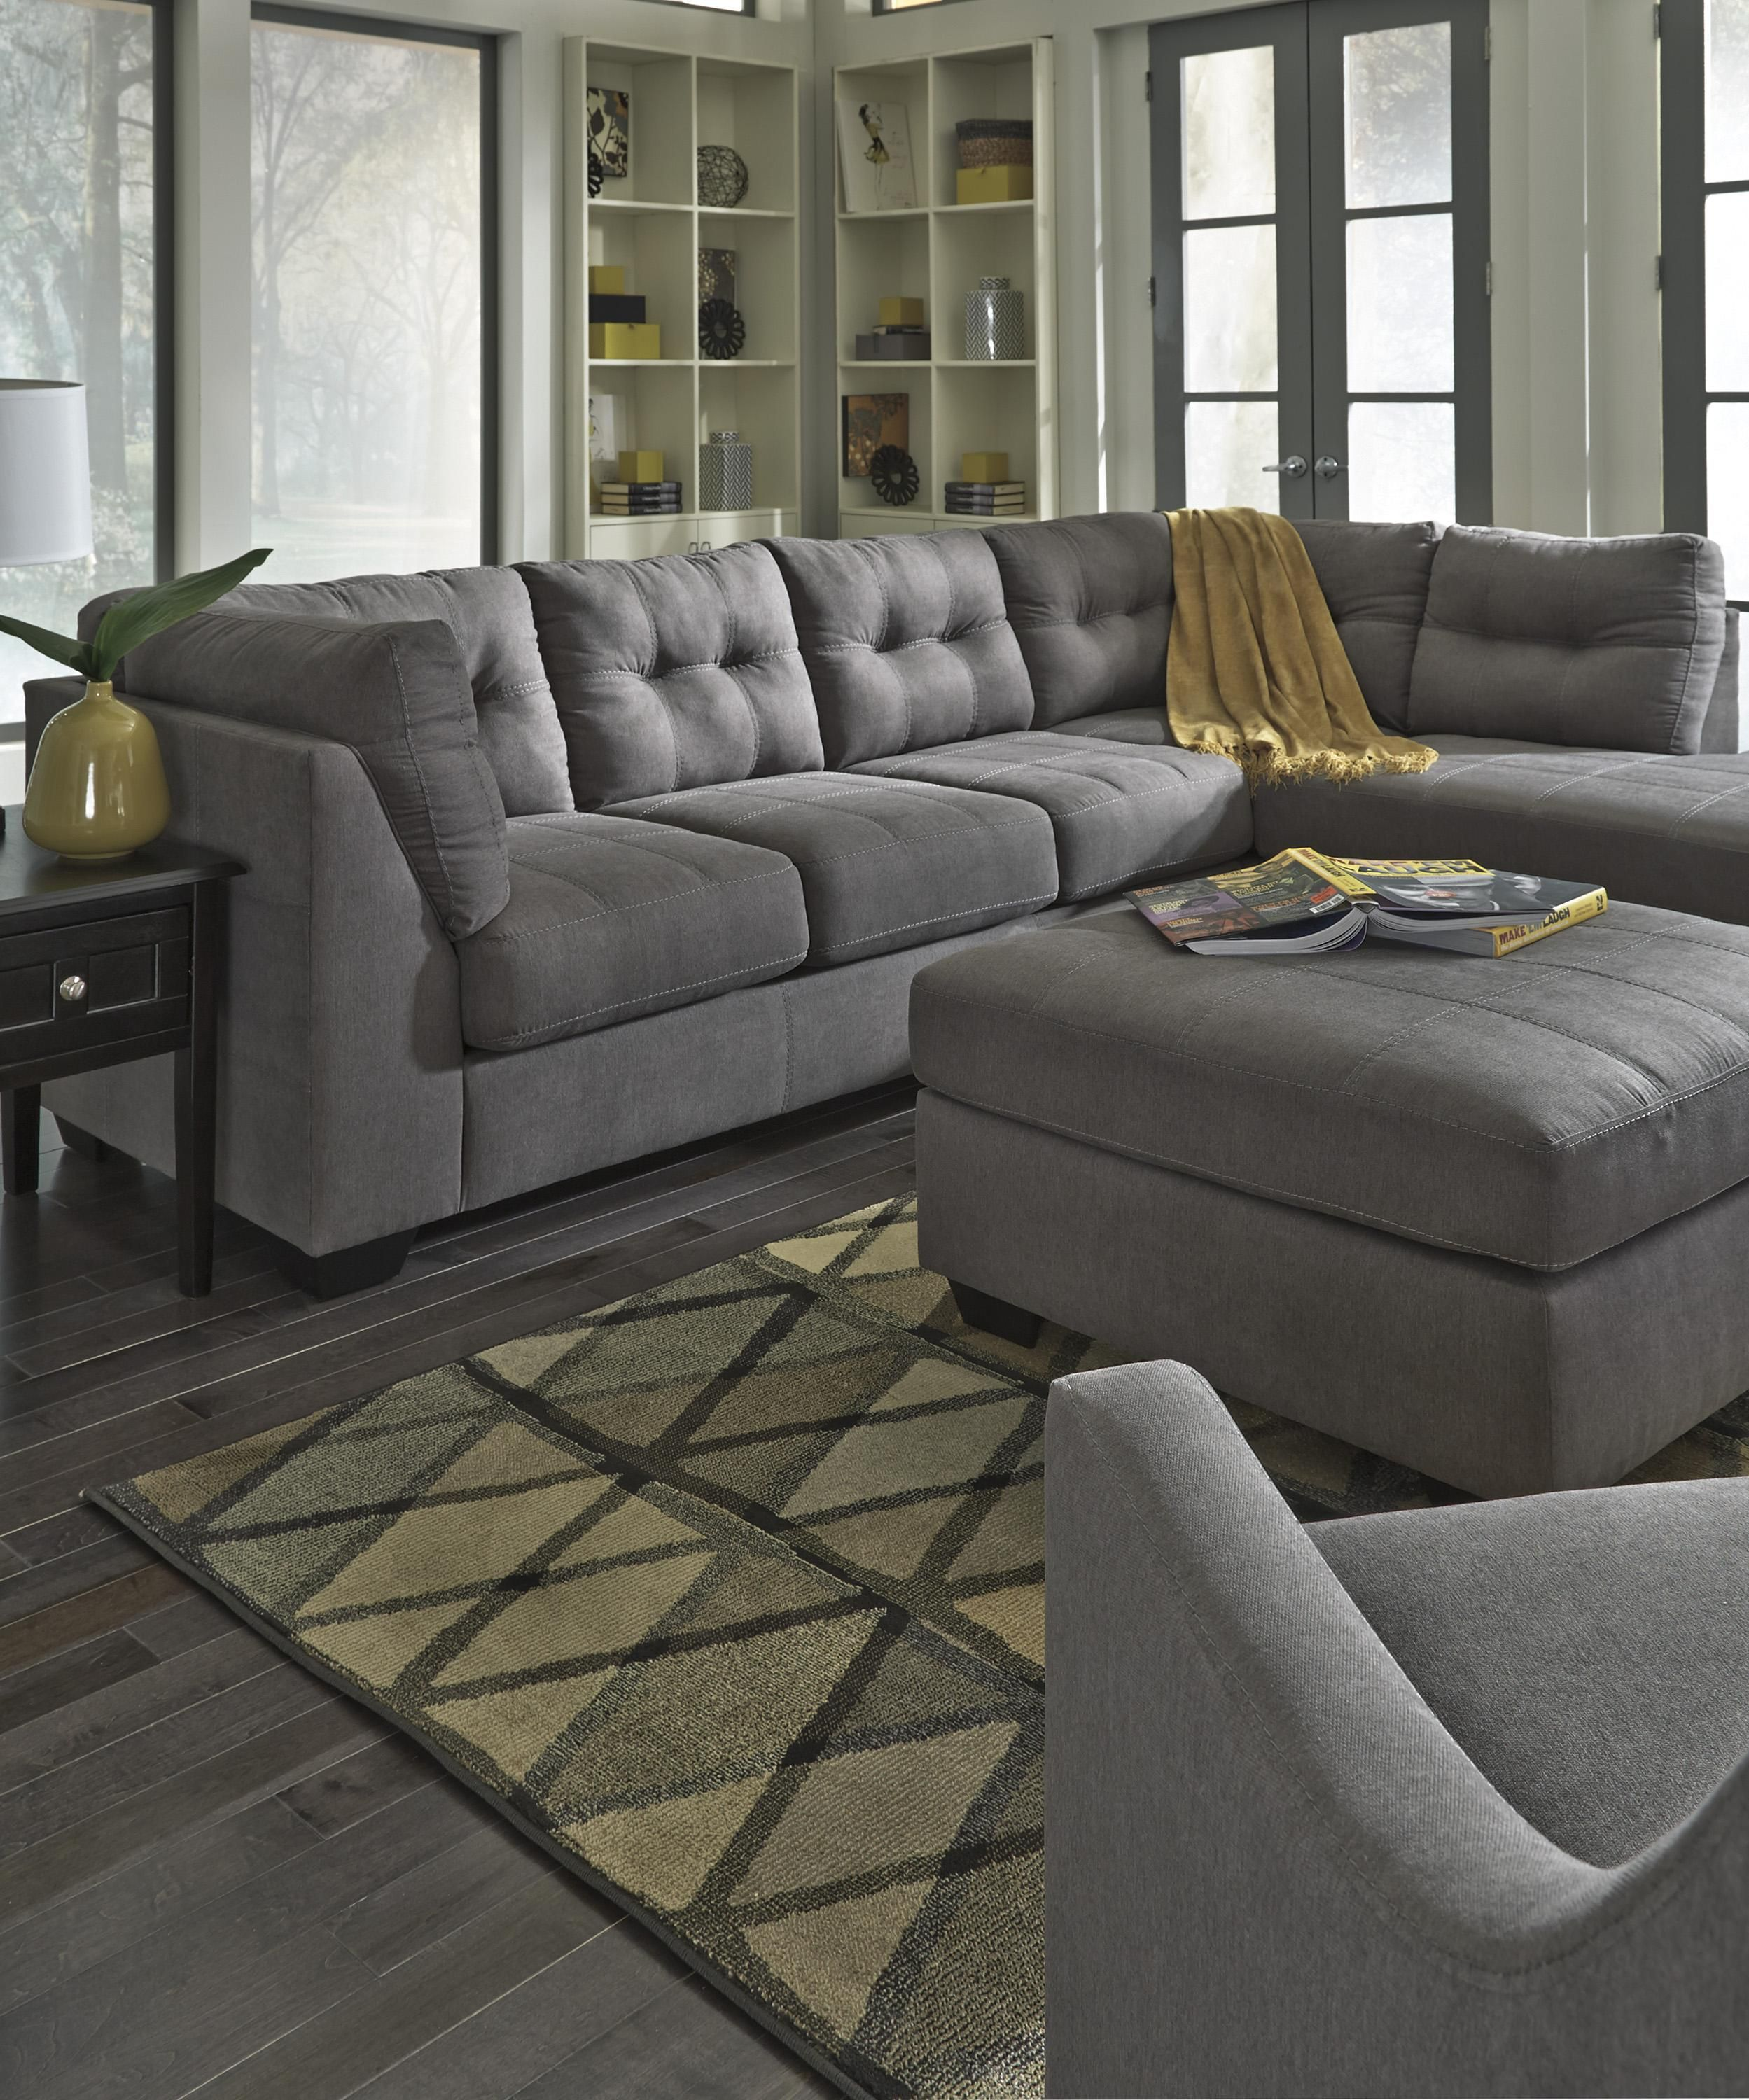 Maier Charcoal 2 Piece Sectional with Right Chaise by Benchcraft